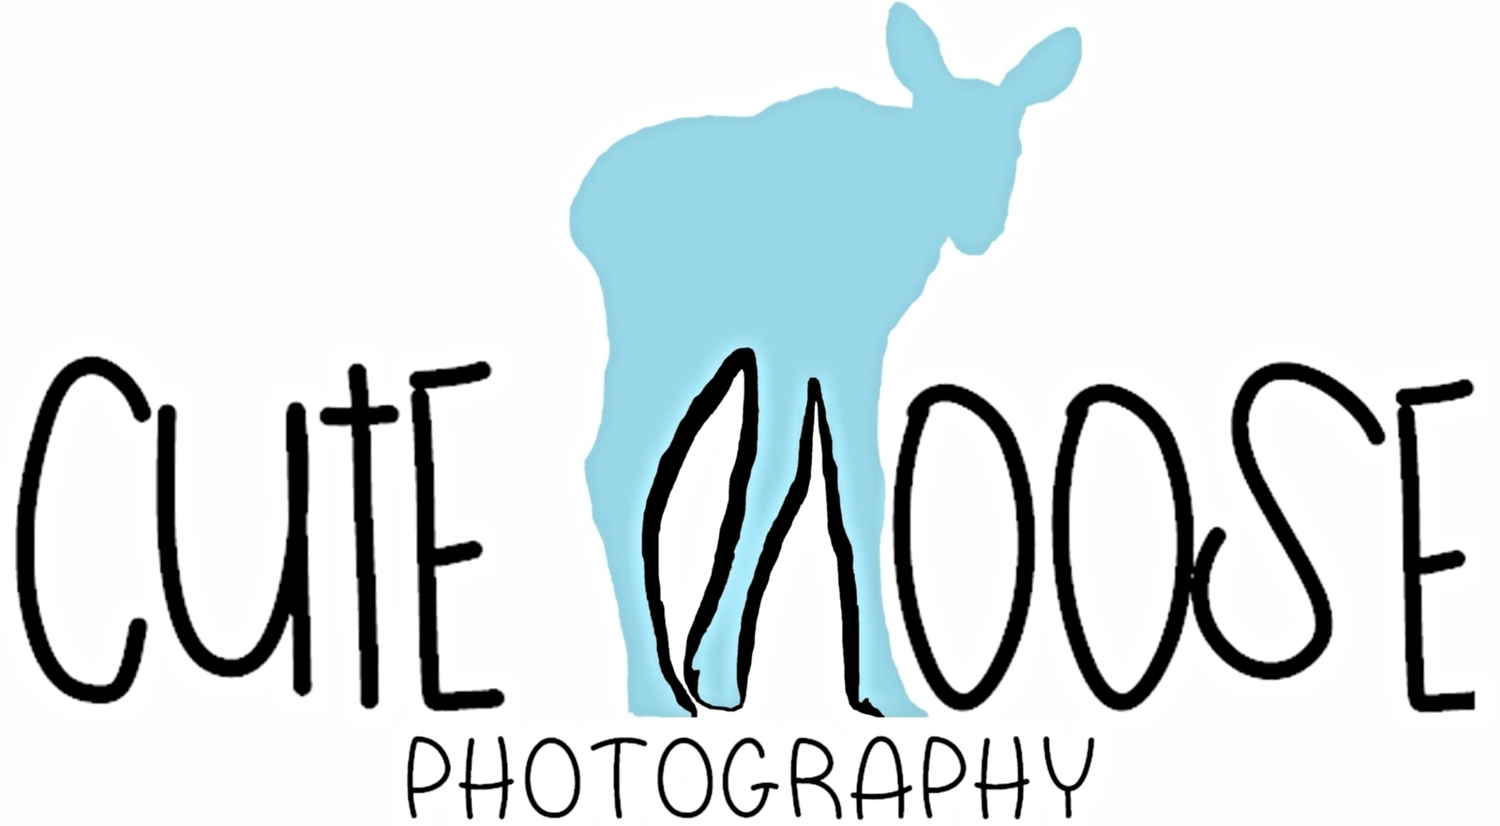 Cute Moose Photography